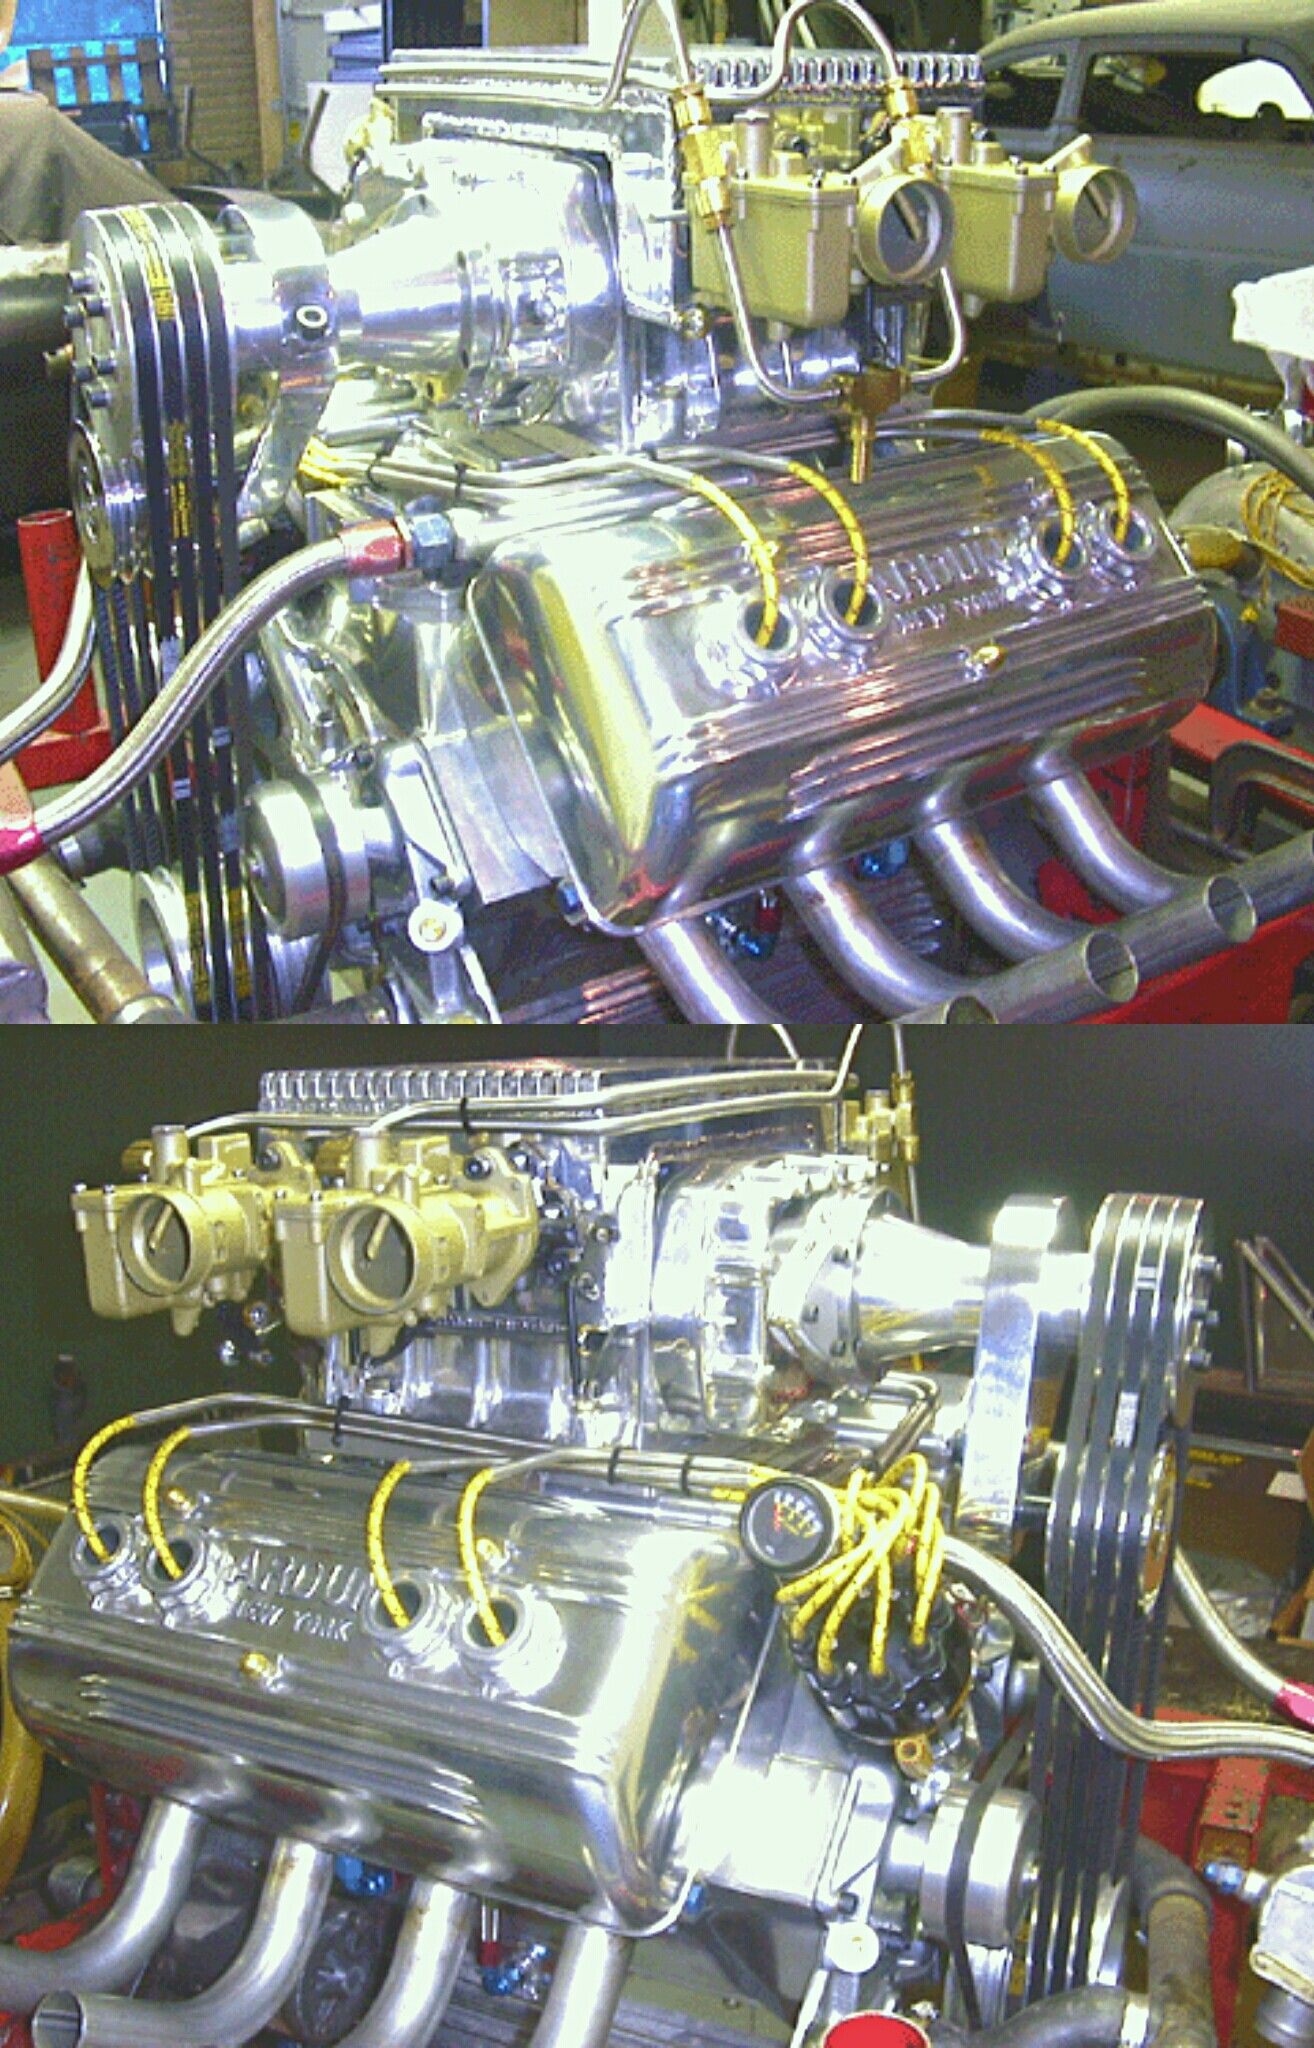 hight resolution of ford flathead blown with side draft carburetor and ardun heads beautiful looking motor